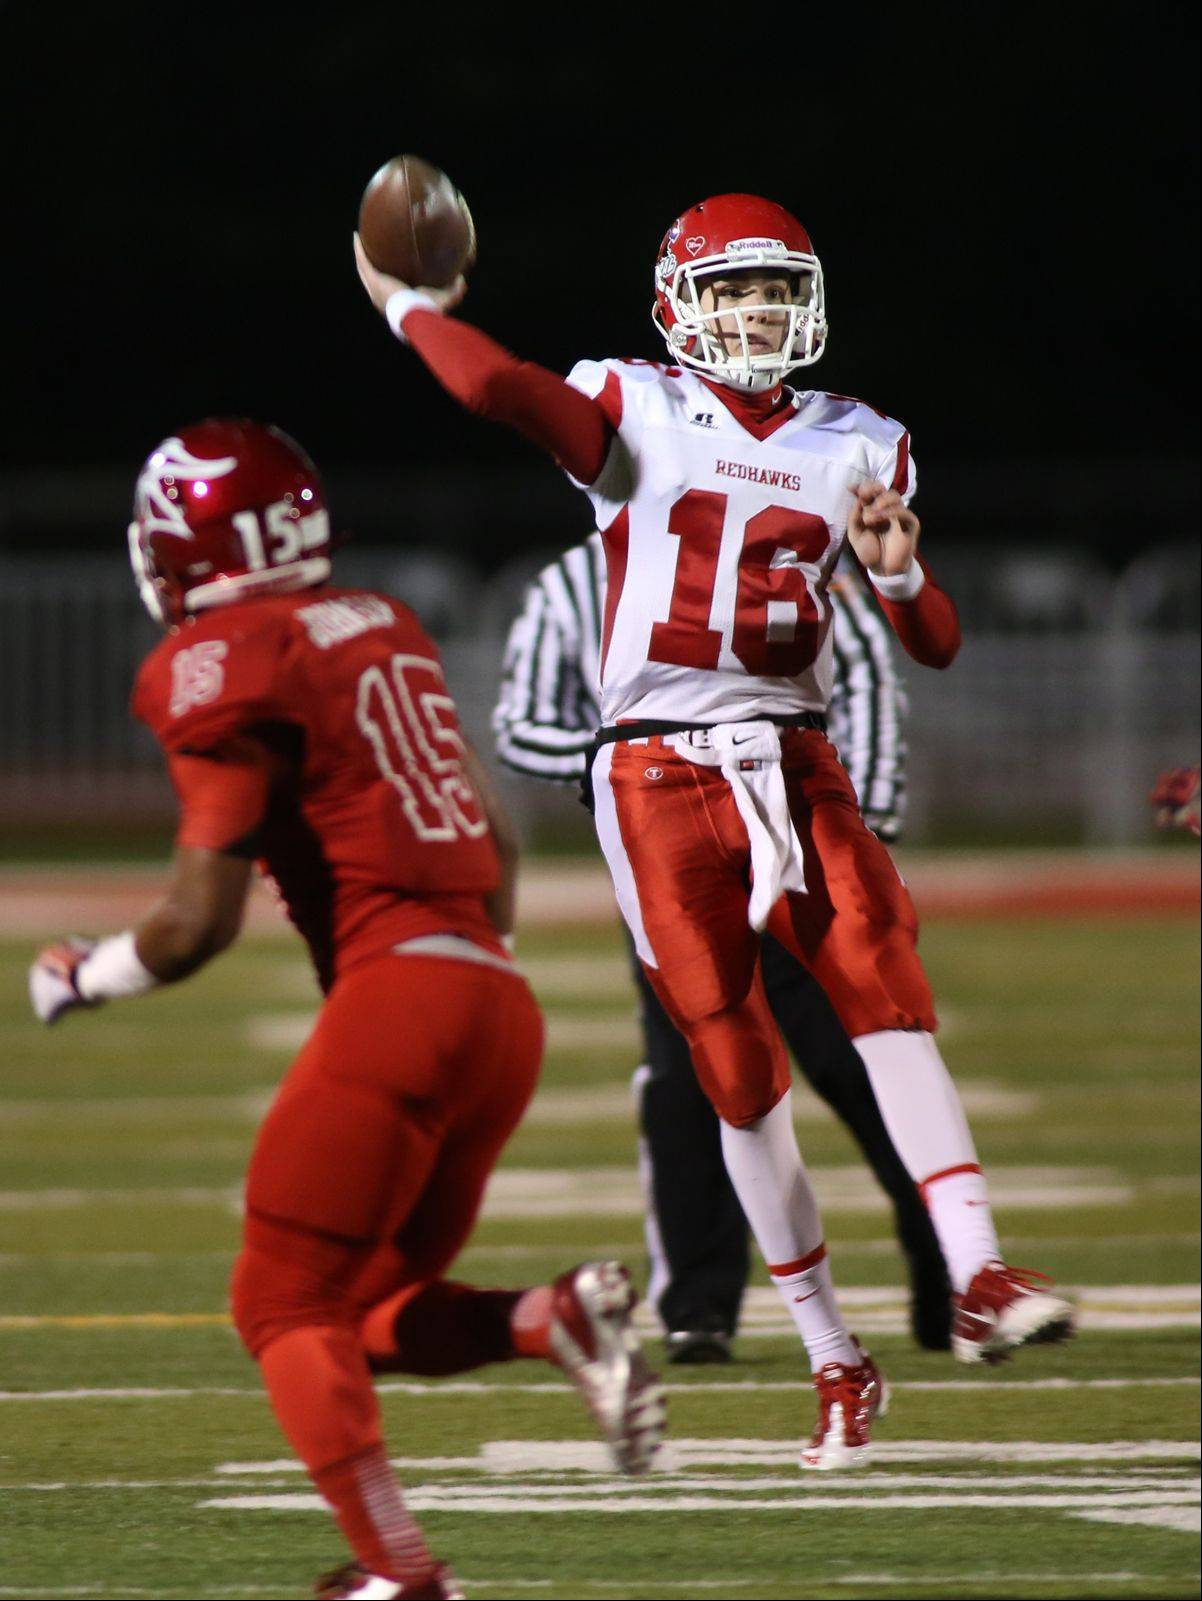 Naperville Central quarterback Jake Kolbe rolls out to pass.